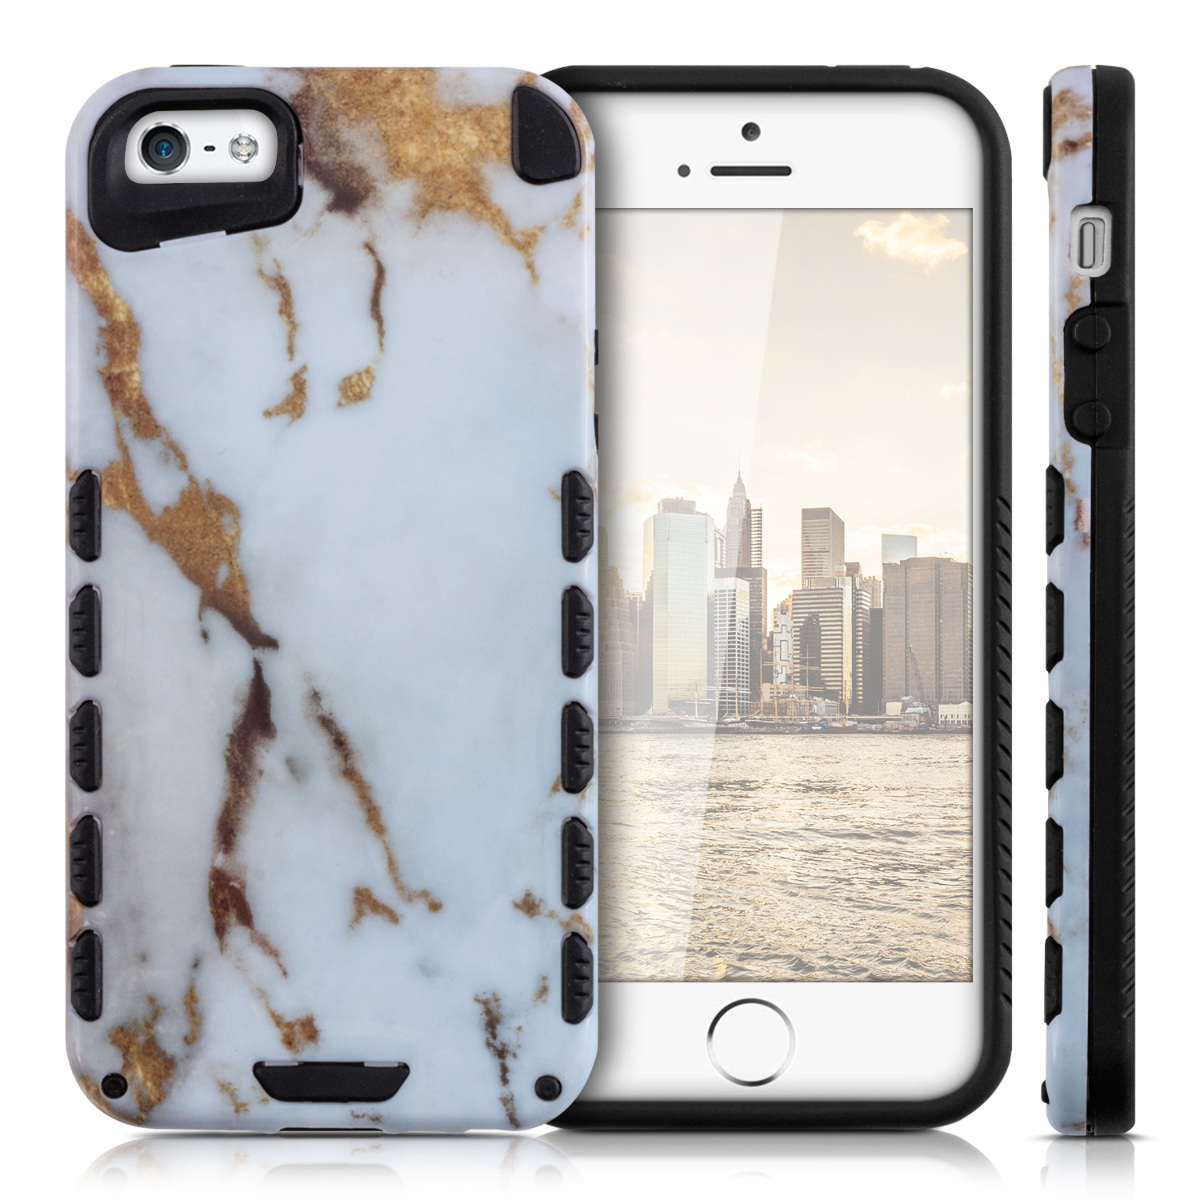 kwmobile-FUNDA-PARA-APPLE-IPHONE-SE-5-5S-CARCASA-PROTECTORA-ESTUCHE-MoVIL-BOLSA